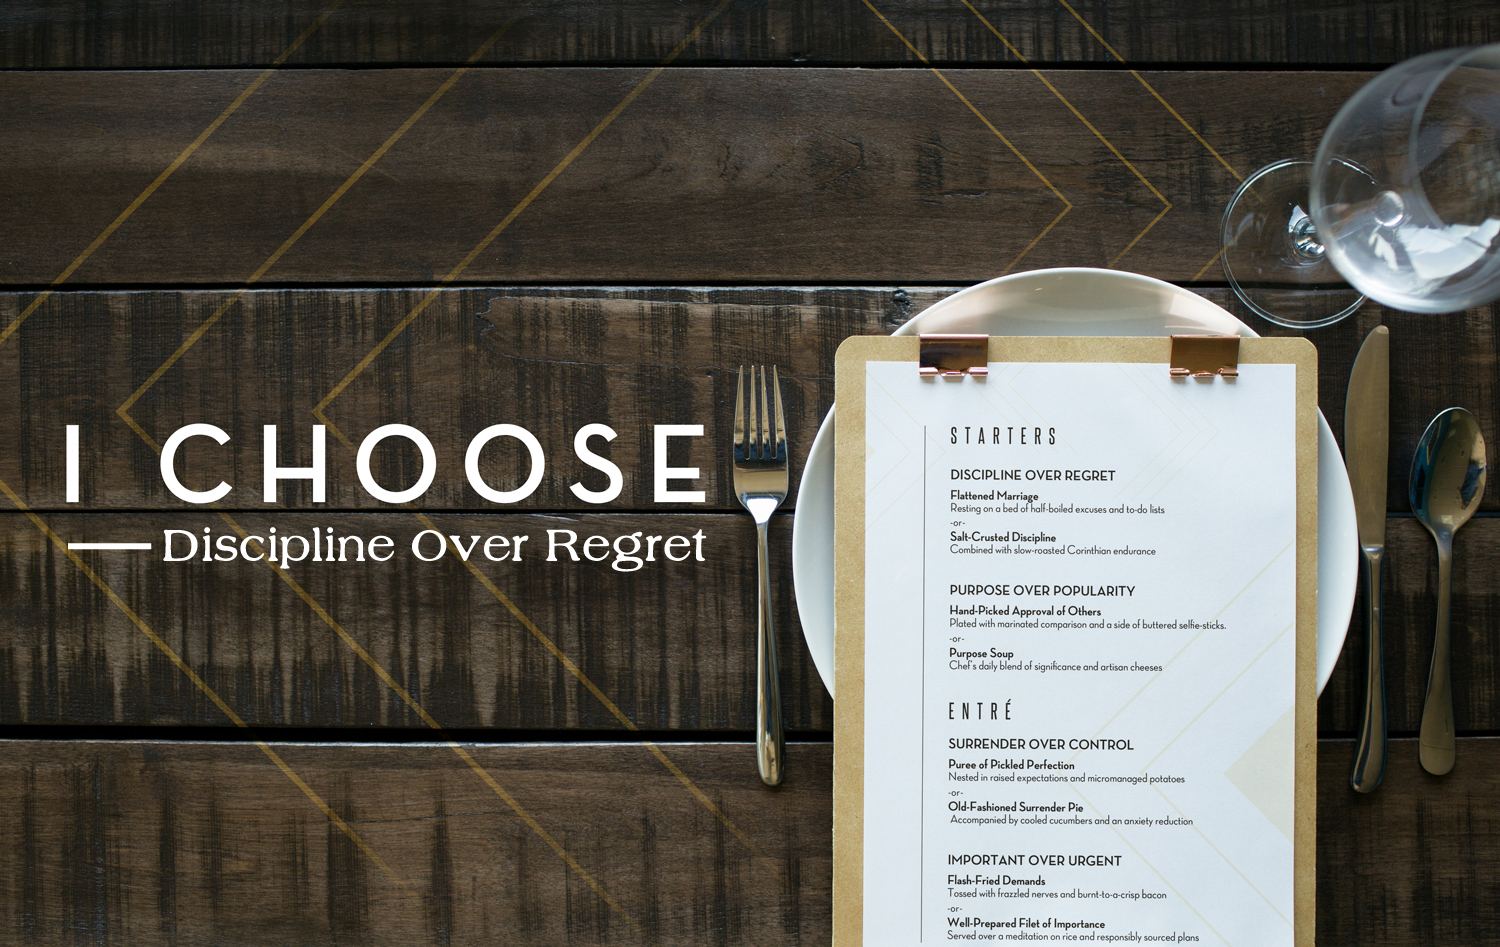 andy at faith: I CHOOSE - Discipline Over Regret